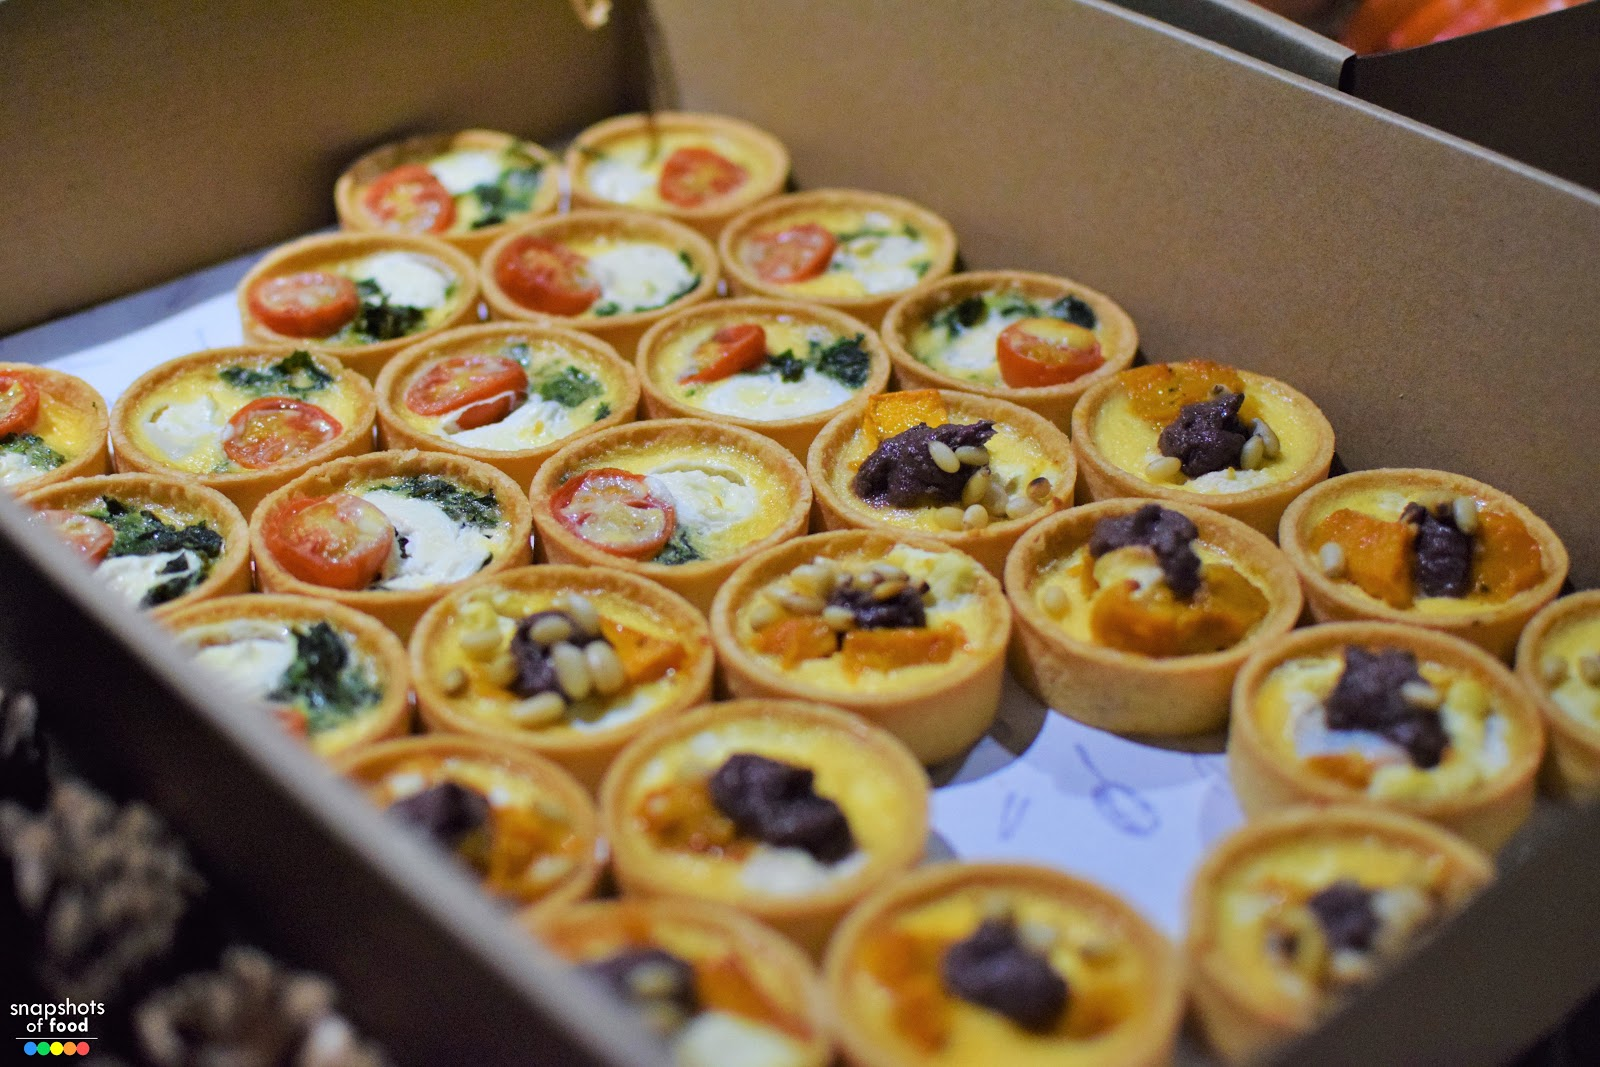 The catering project catering services sydney for Canape catering sydney